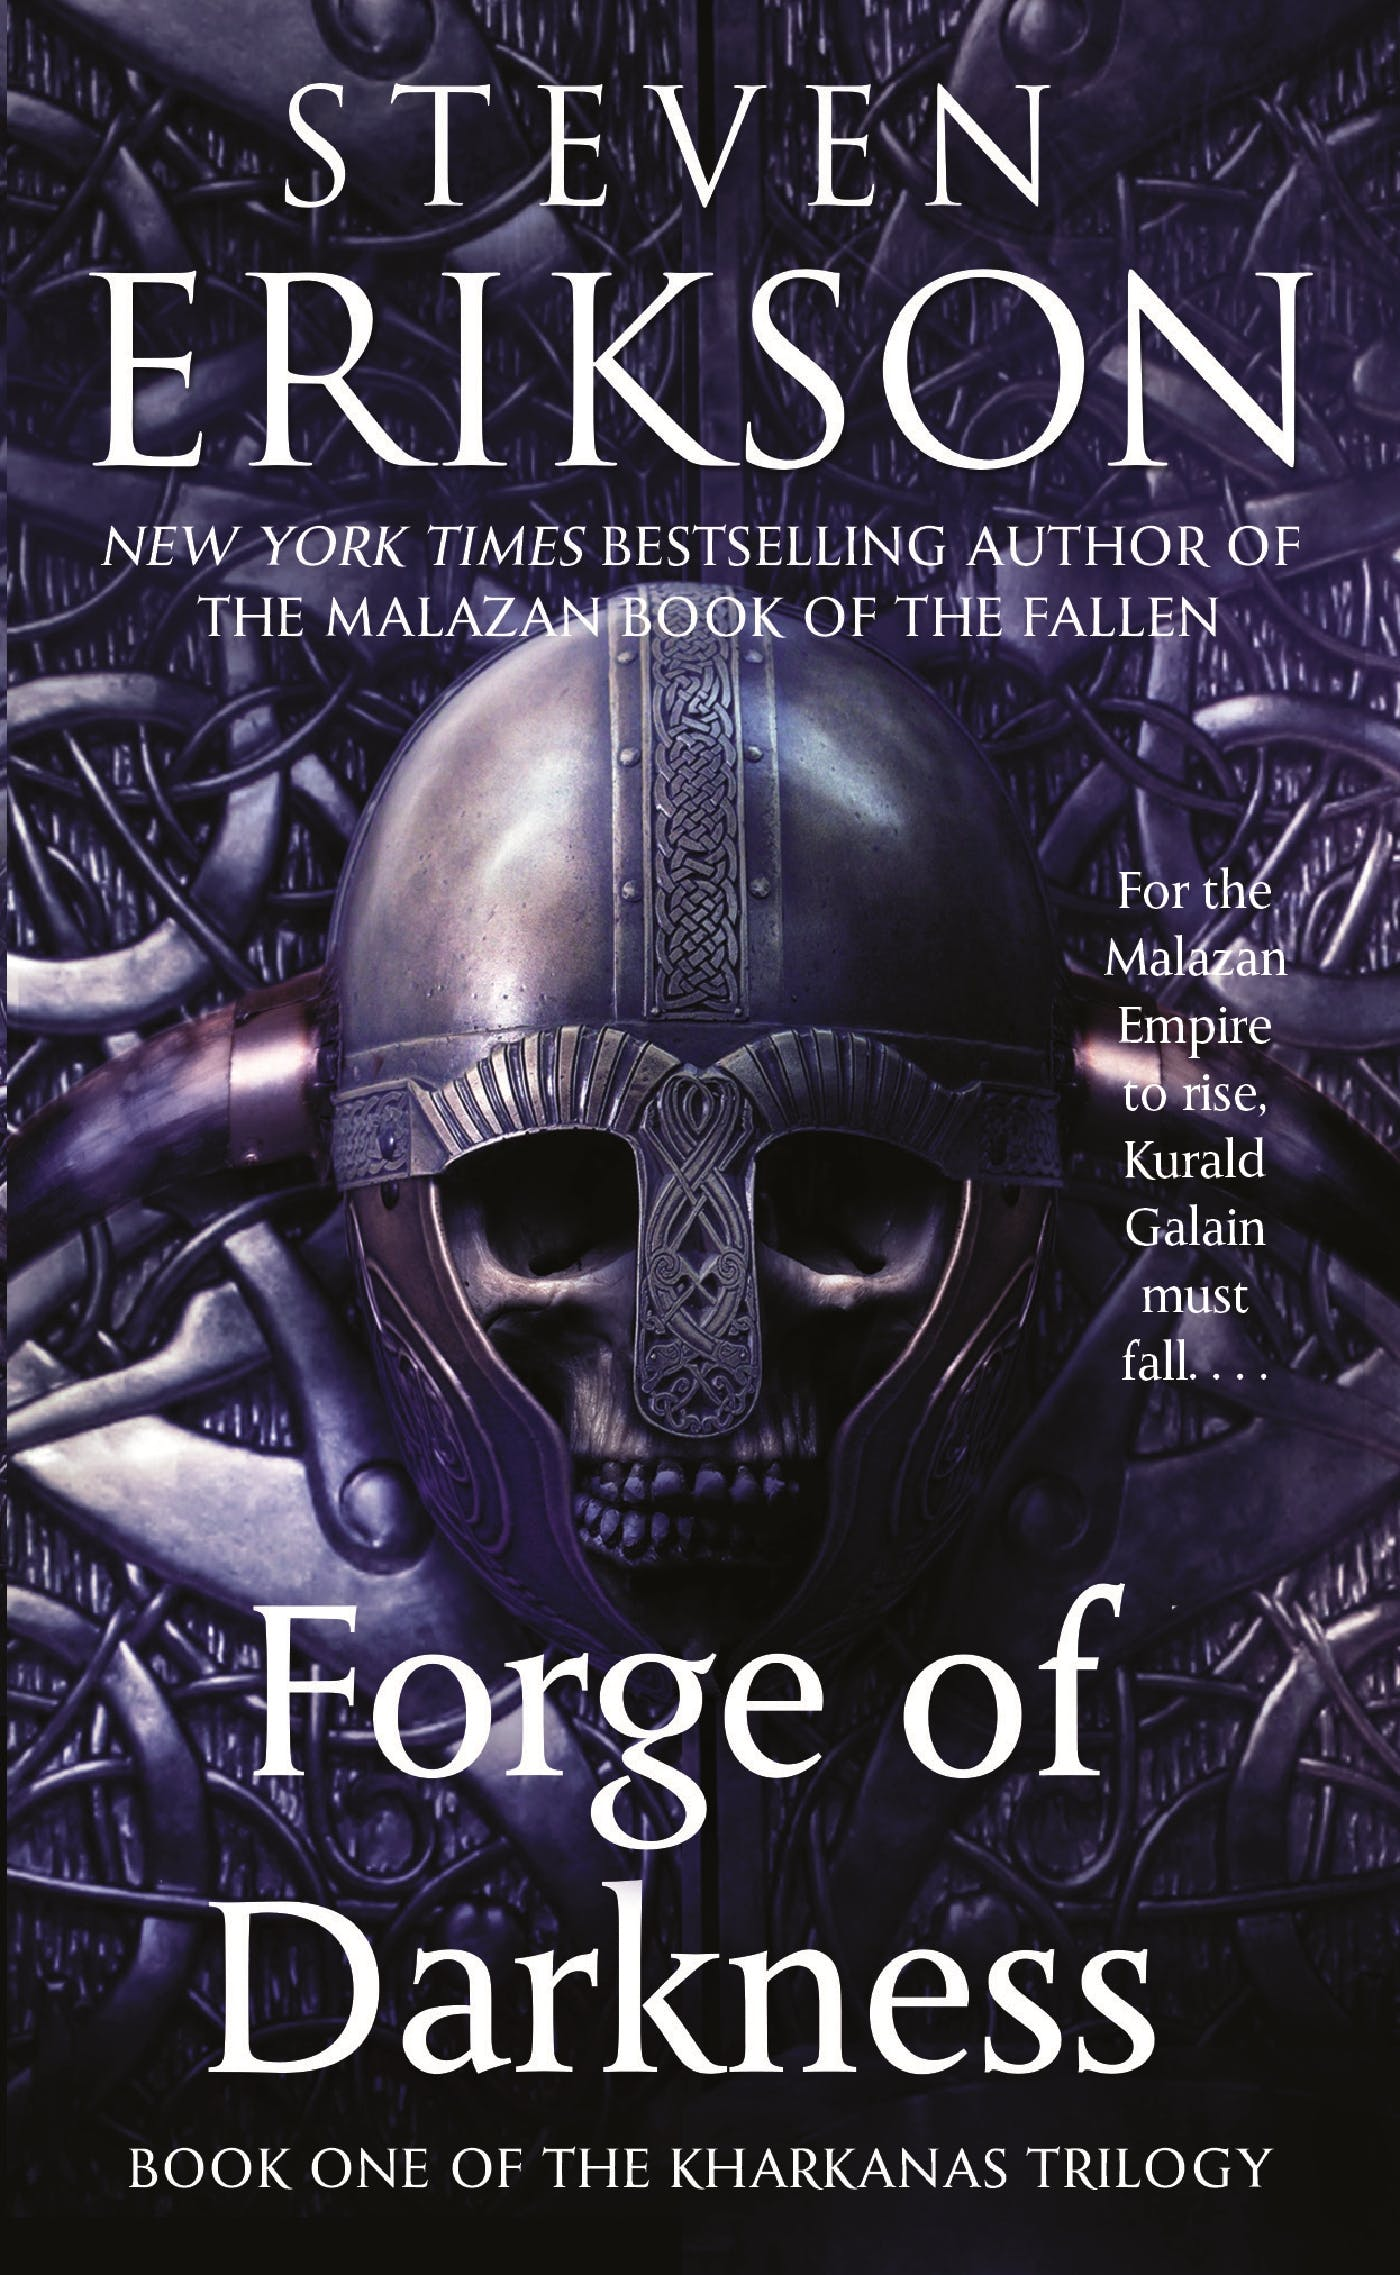 Image of Forge of Darkness